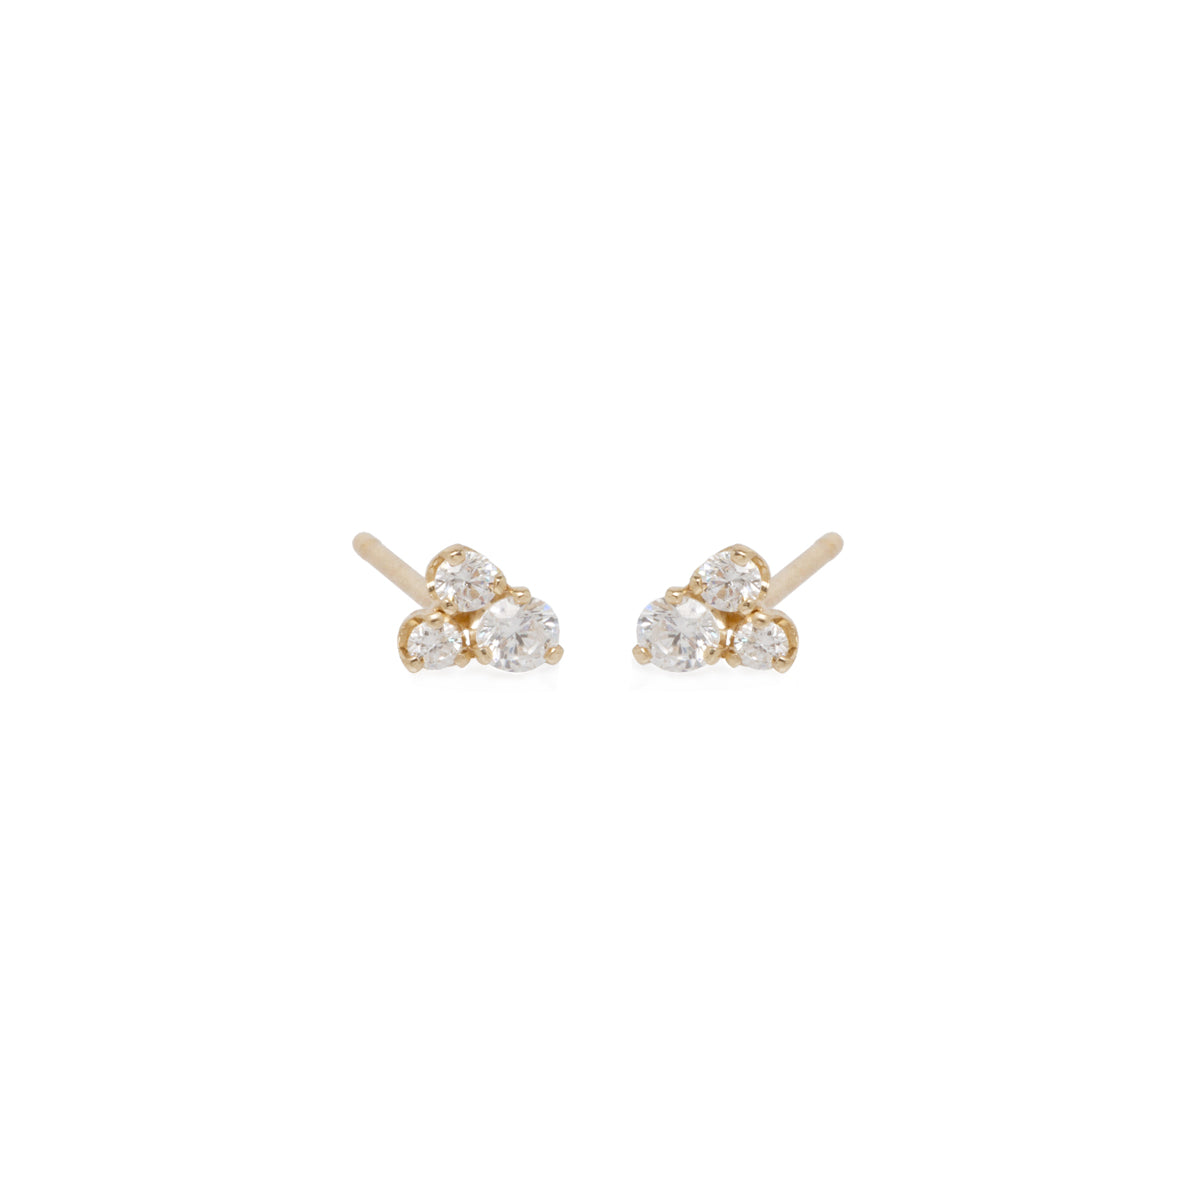 3 small mixed diamond prong earrings